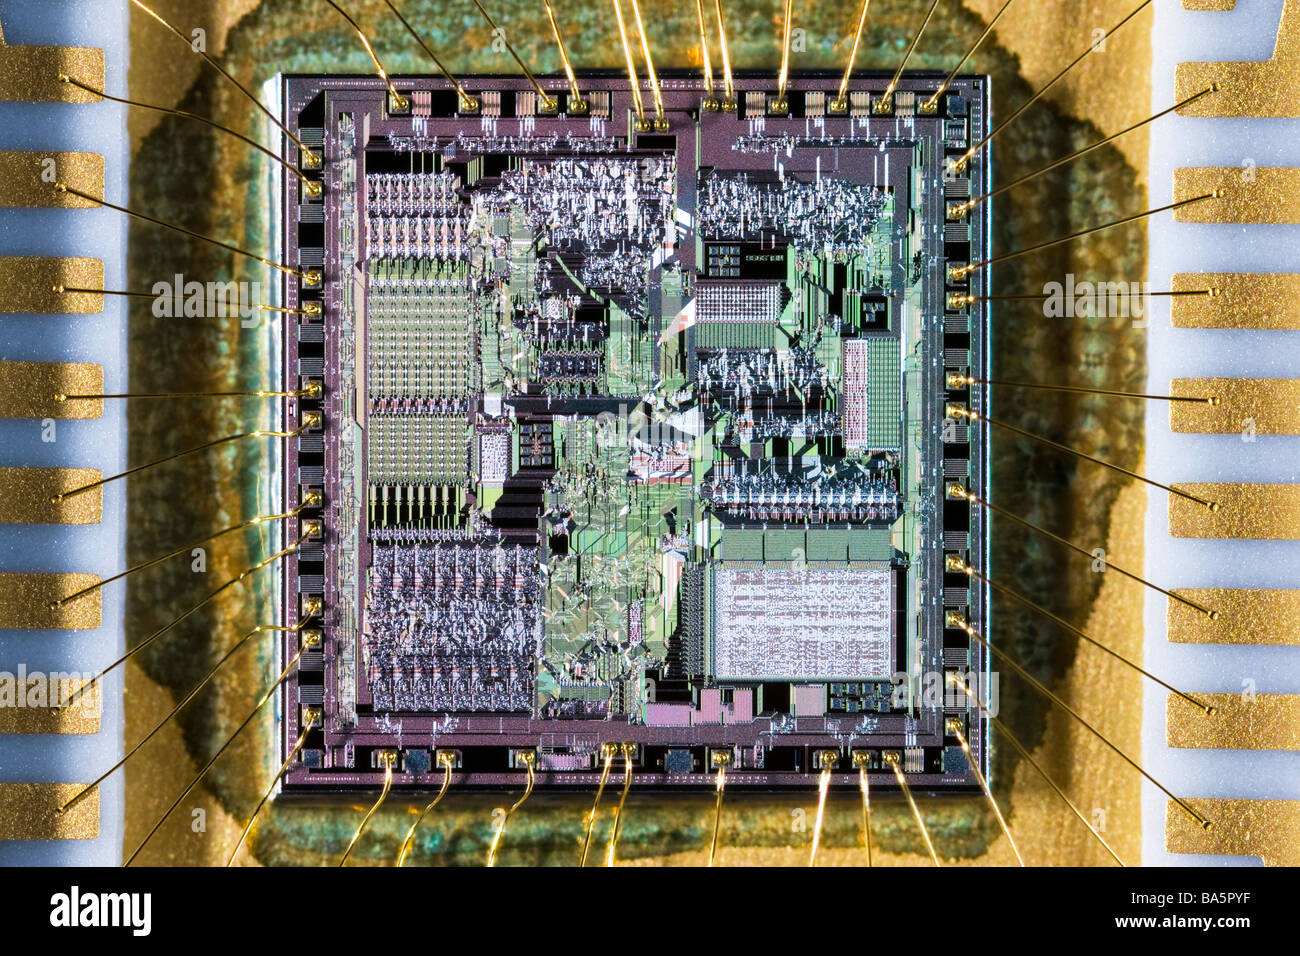 8086 microprocesor chip extreme close up revealing the fine details - Stock Image